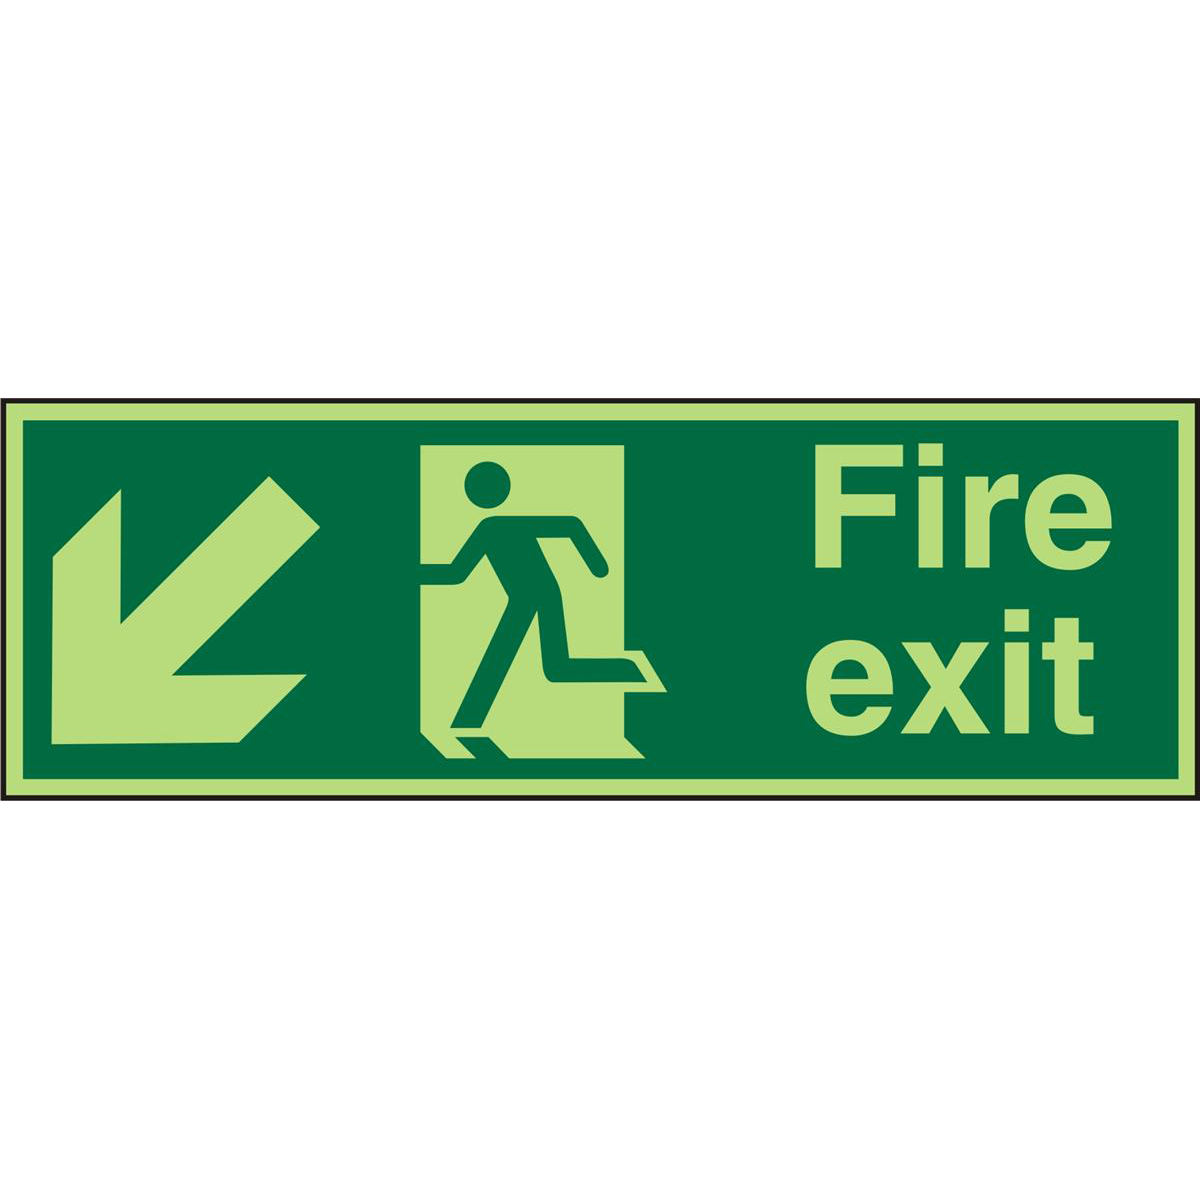 PhotolumSign 2mm 450x150 FireExit Man Running Left&Arrow Ref PACSP122450x150 Up to 10 Day Leadtime